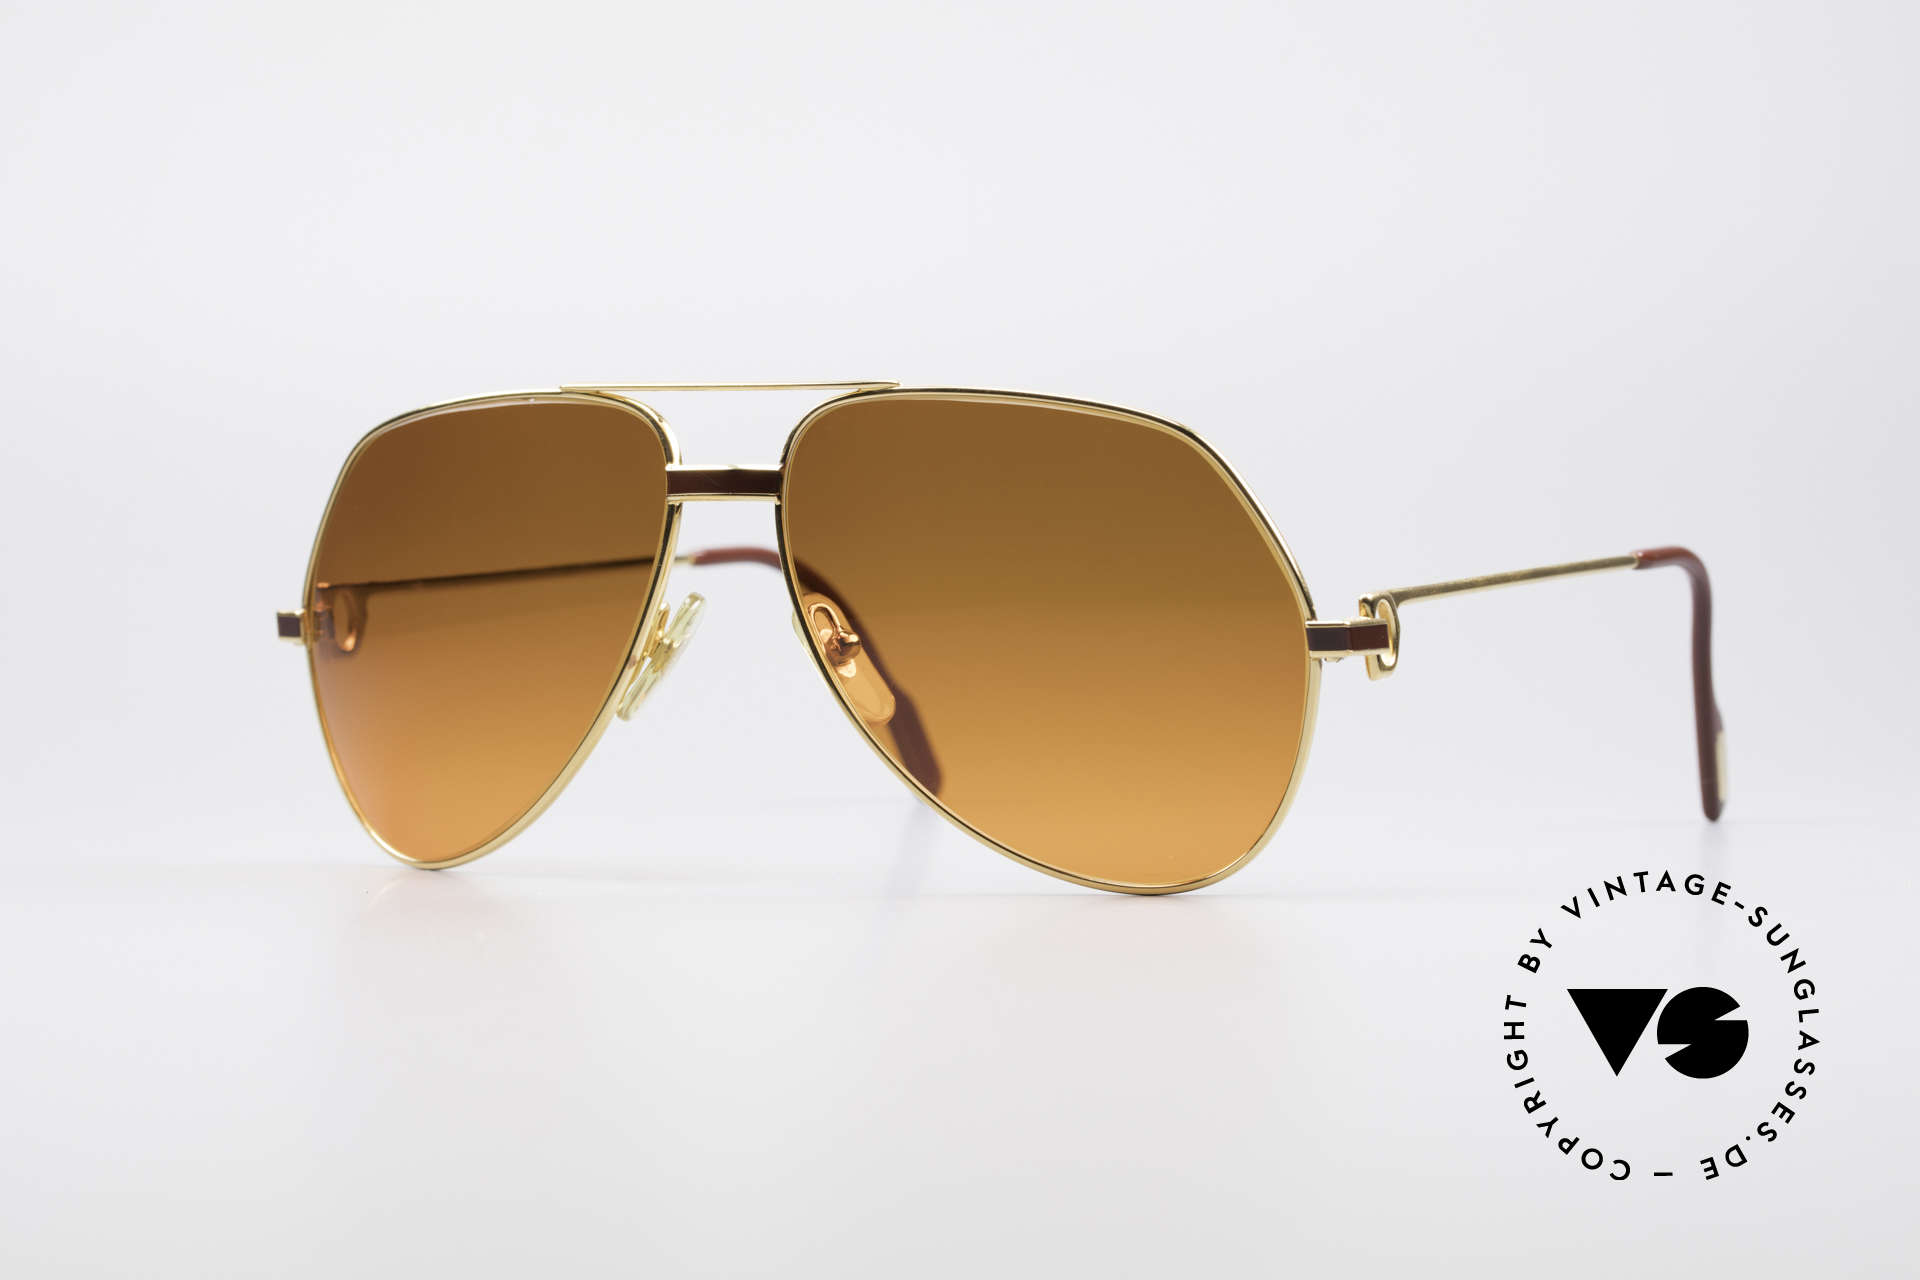 Cartier Vendome Laque - L Luxury 80's Aviator Sunglasses, Vendome = the most famous eyewear design by CARTIER, Made for Men and Women